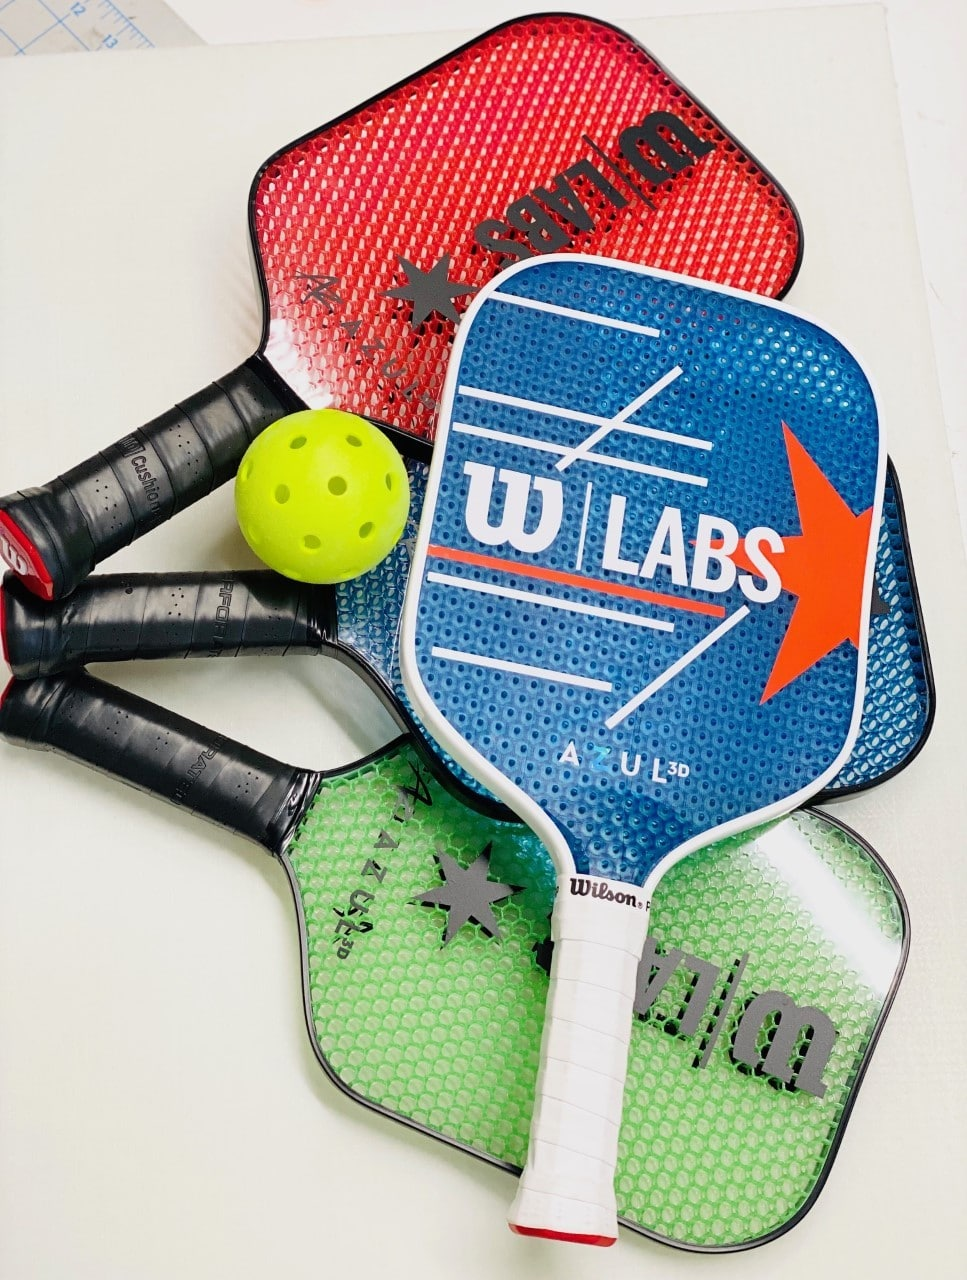 How Wilson developed two new 3D printed pickleball paddles